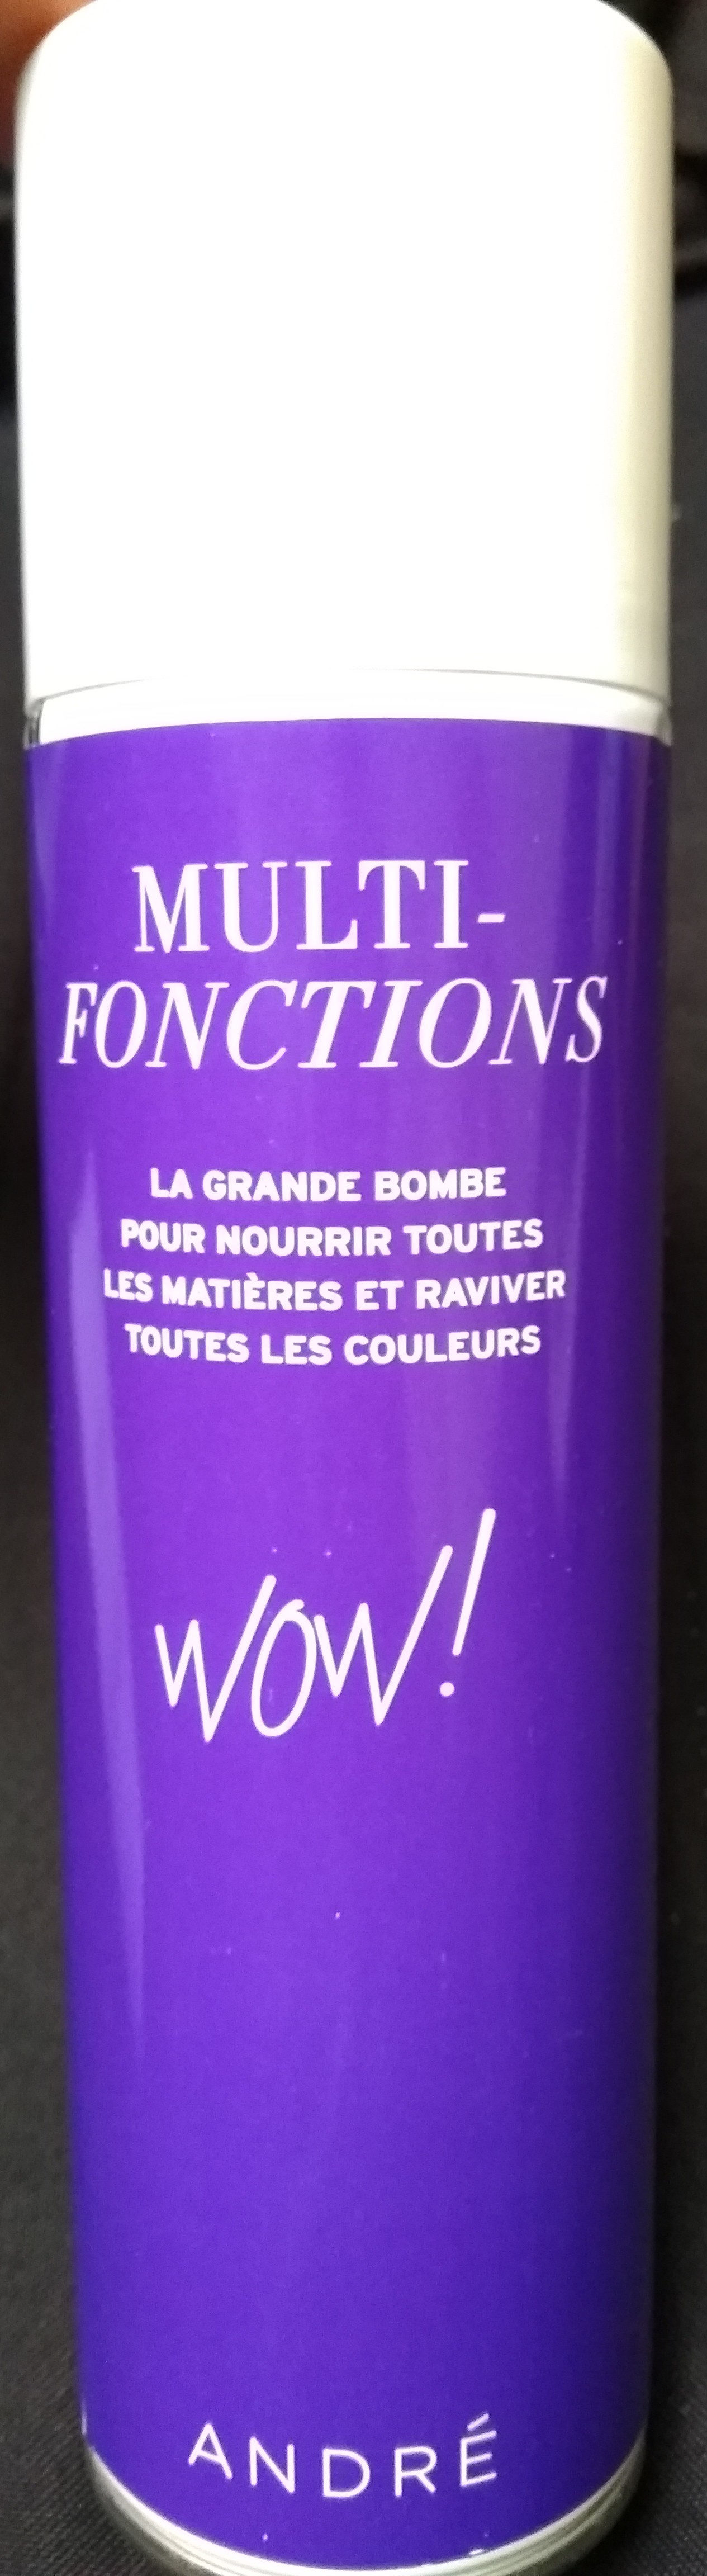 Multi-fonctions - Product - fr